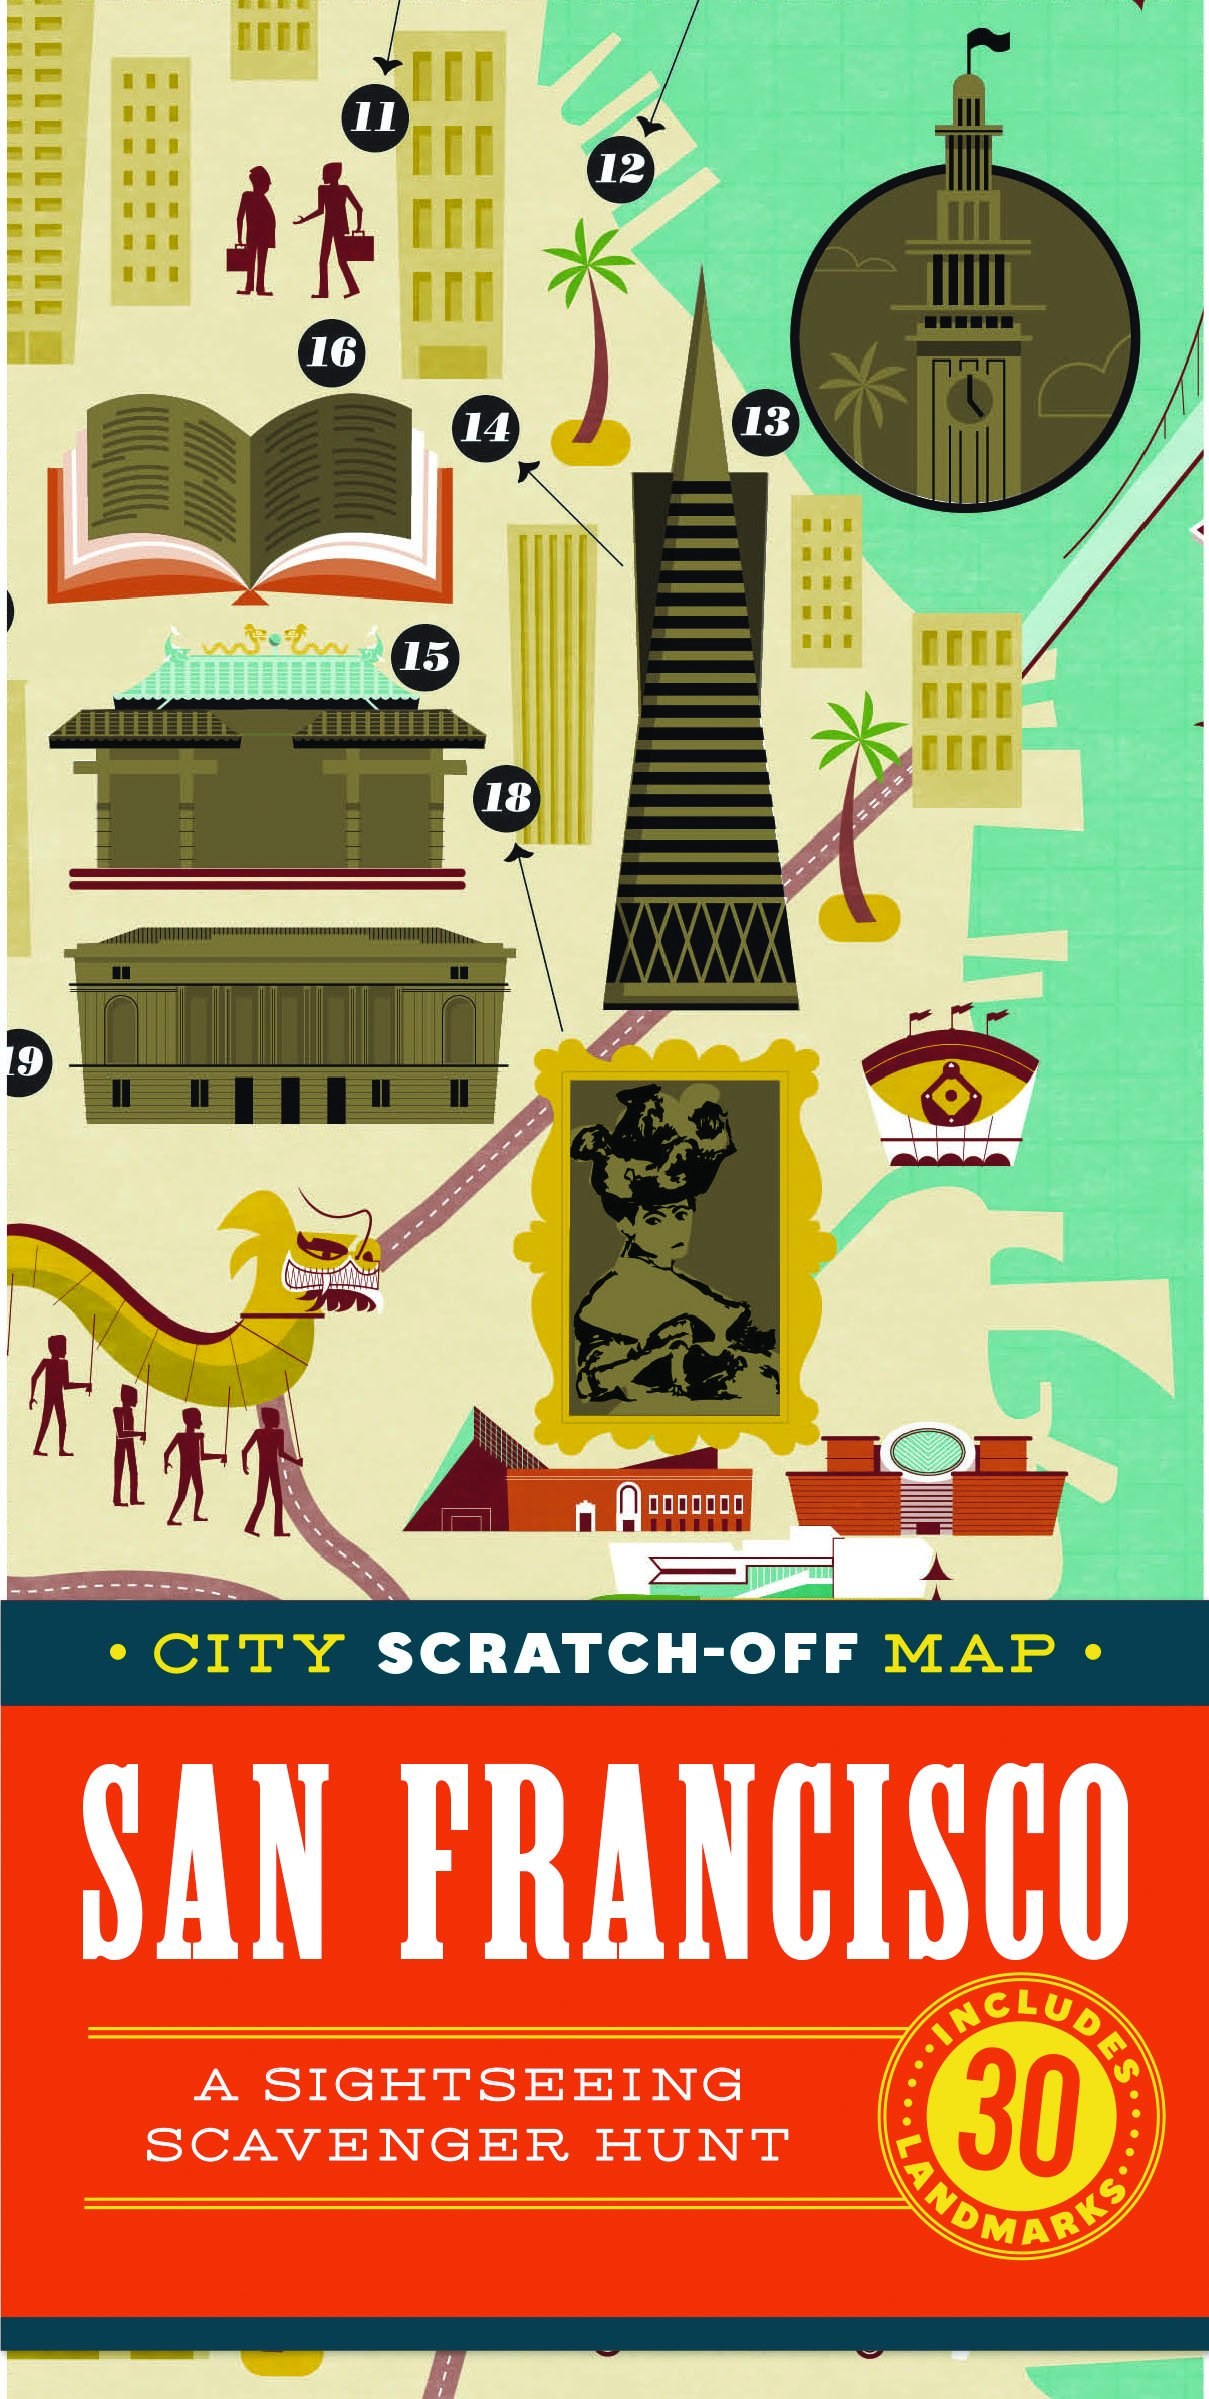 City Scratch-Off Map: San Francisco: A Sightseeing Scavenger ... on victoria sightseeing map, santa cruz sightseeing map, fisherman's wharf sightseeing map, hollywood los angeles sightseeing map, japanese tea garden sf map, houston sightseeing map, hong kong sightseeing map, albuquerque sightseeing map, chicago sightseeing map, sf city map, bergen sightseeing map, boston sightseeing map, philadelphia sightseeing map, brooklyn sightseeing map, new jersey sightseeing map, london sightseeing map, california sightseeing map, charleston sightseeing map, tennessee sightseeing map, kansas city sightseeing map,